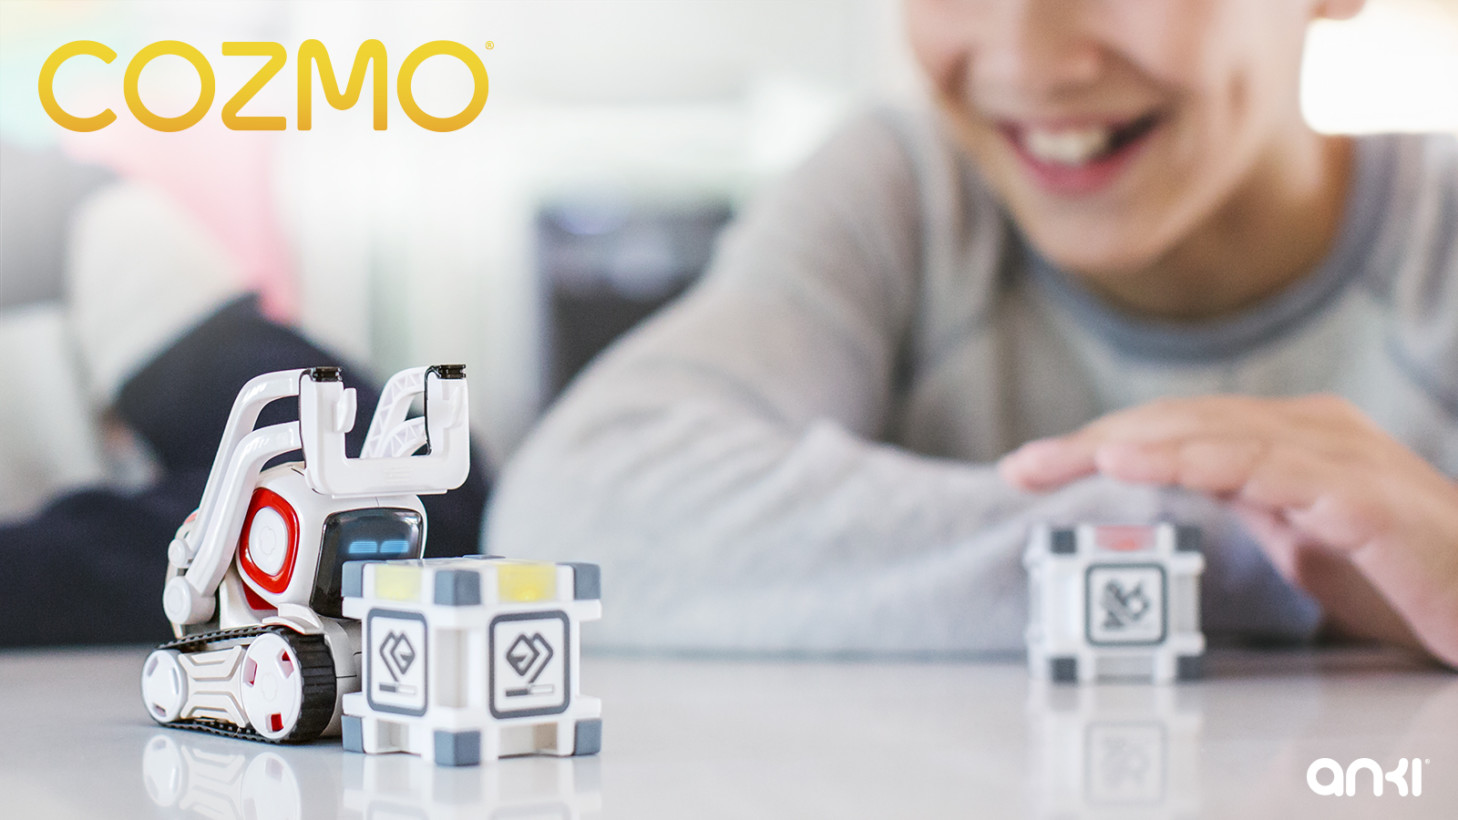 Anki just built Wall-E and Eve's love child into a robot named Cozmo, and it's incredible